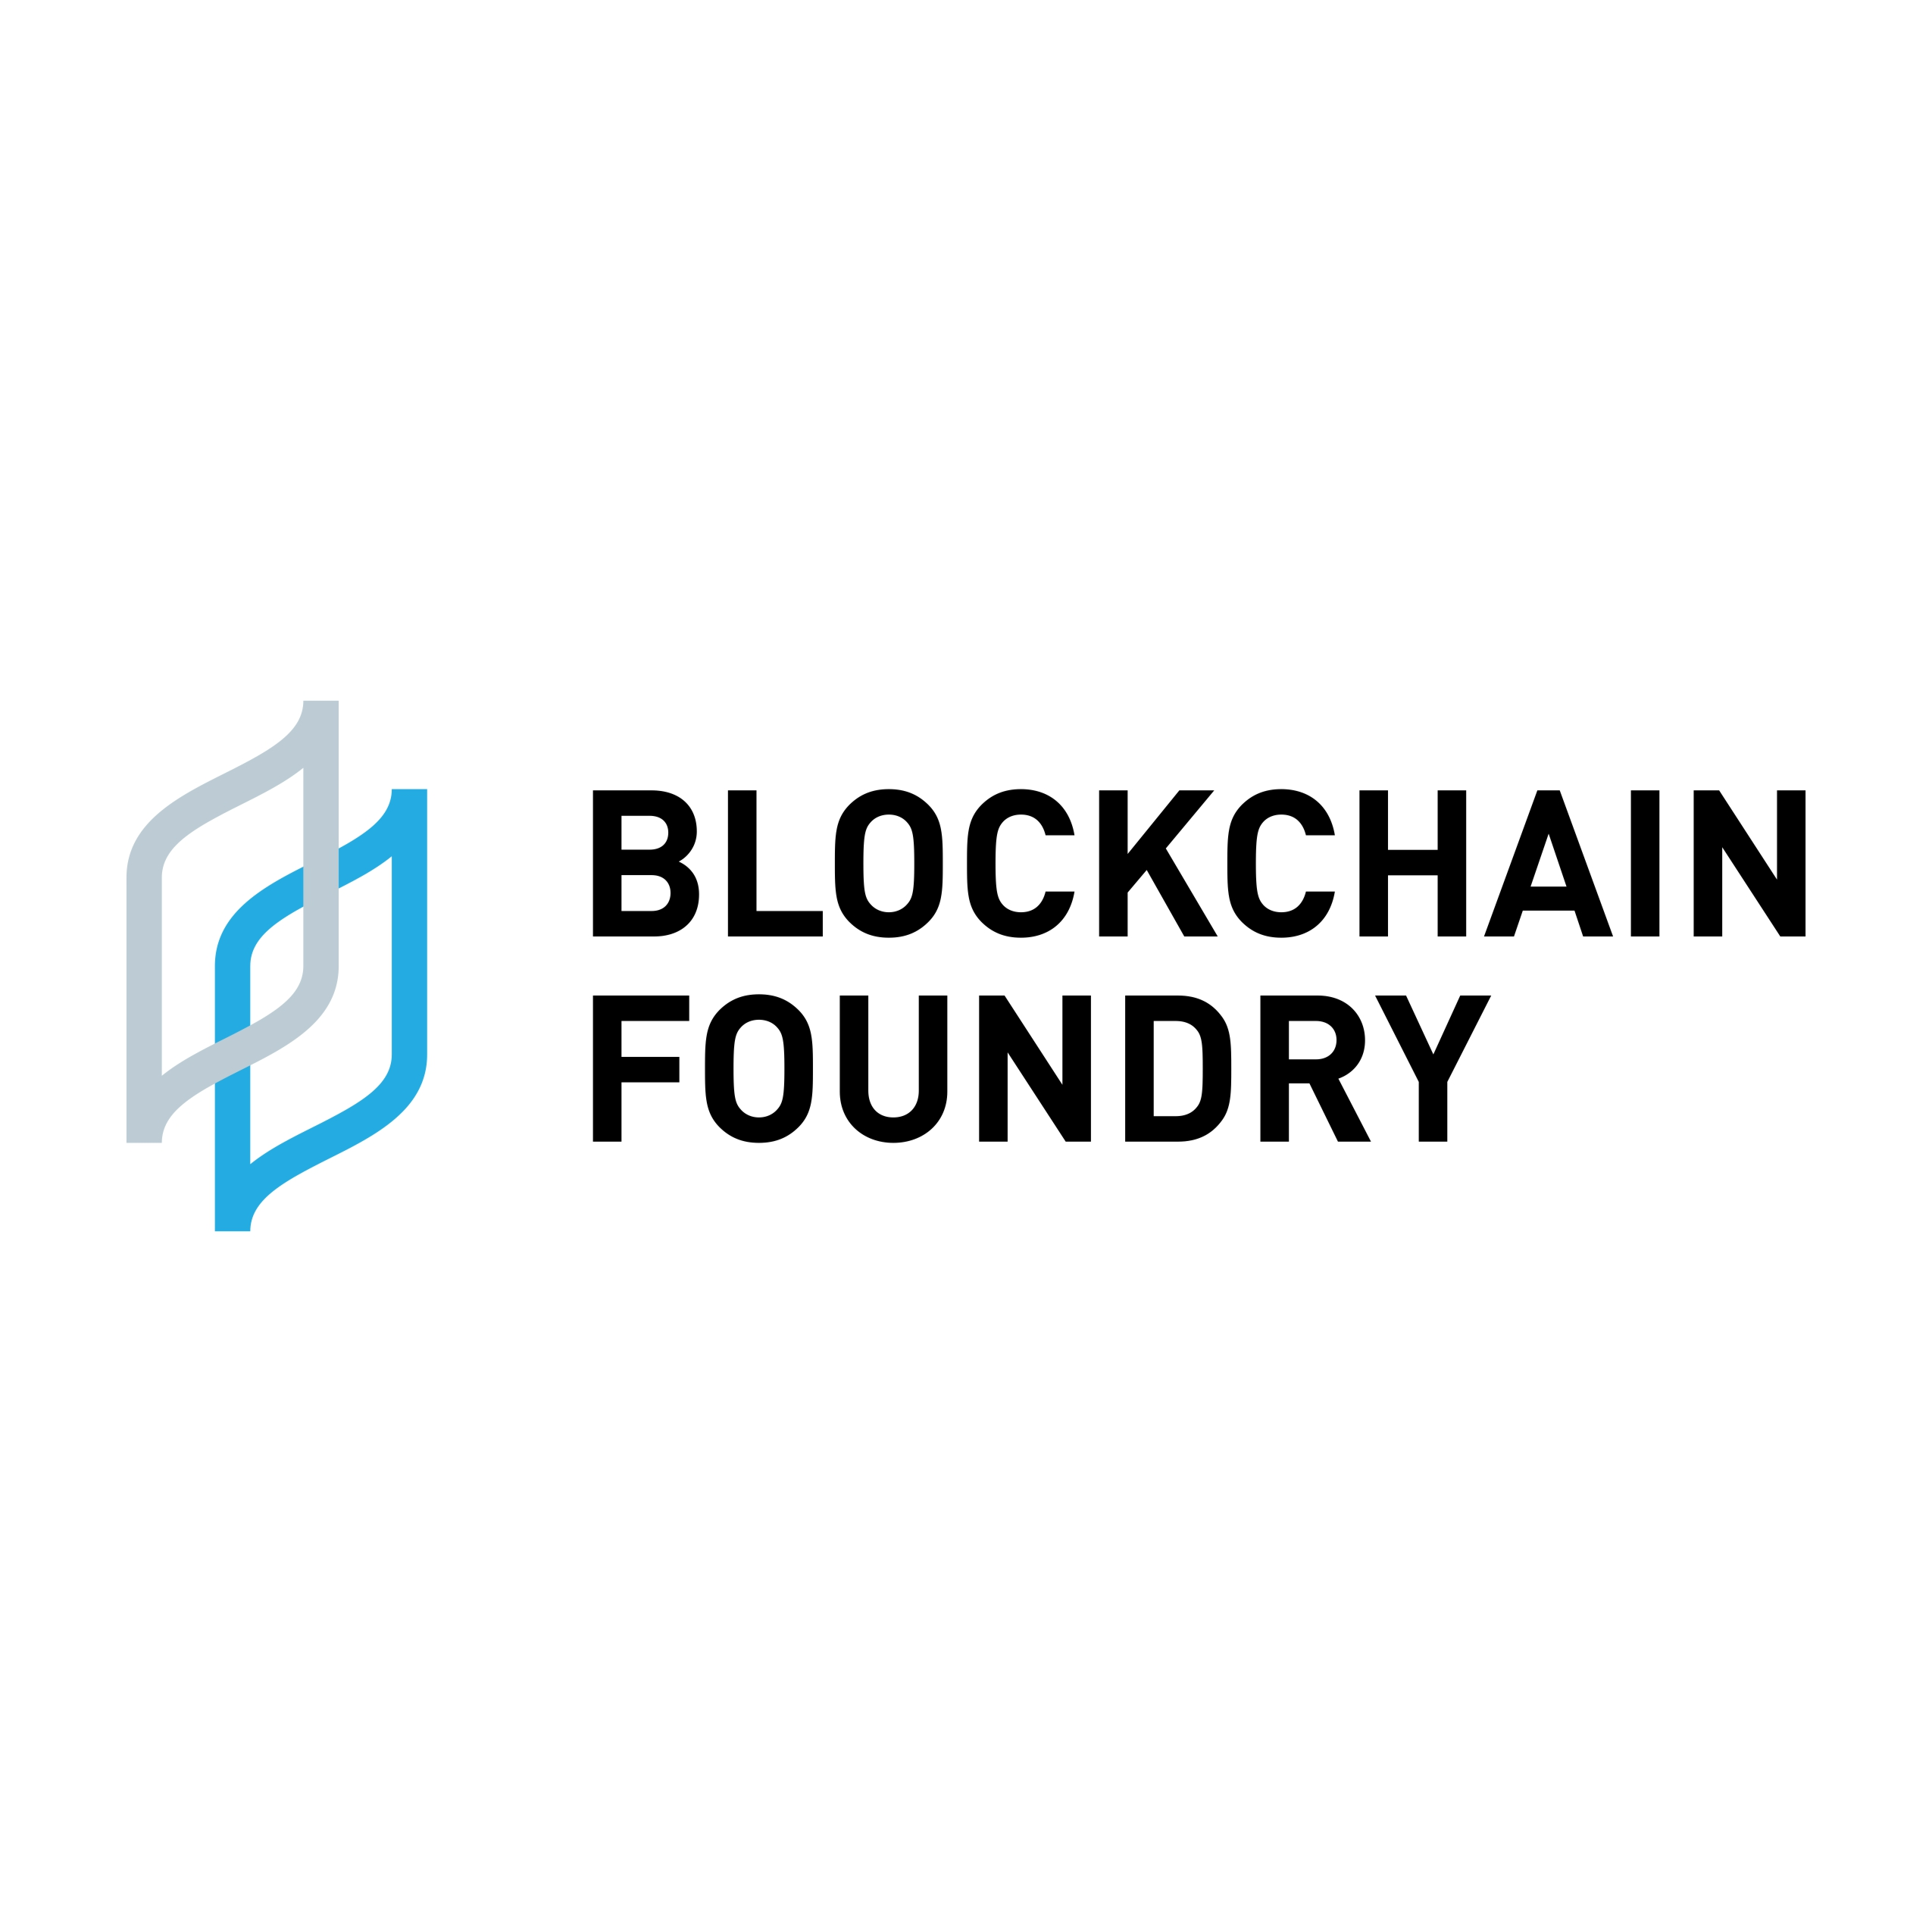 Blockchain Foundry Announces Renewal of Blockchain Development Agreement with the LODE Community